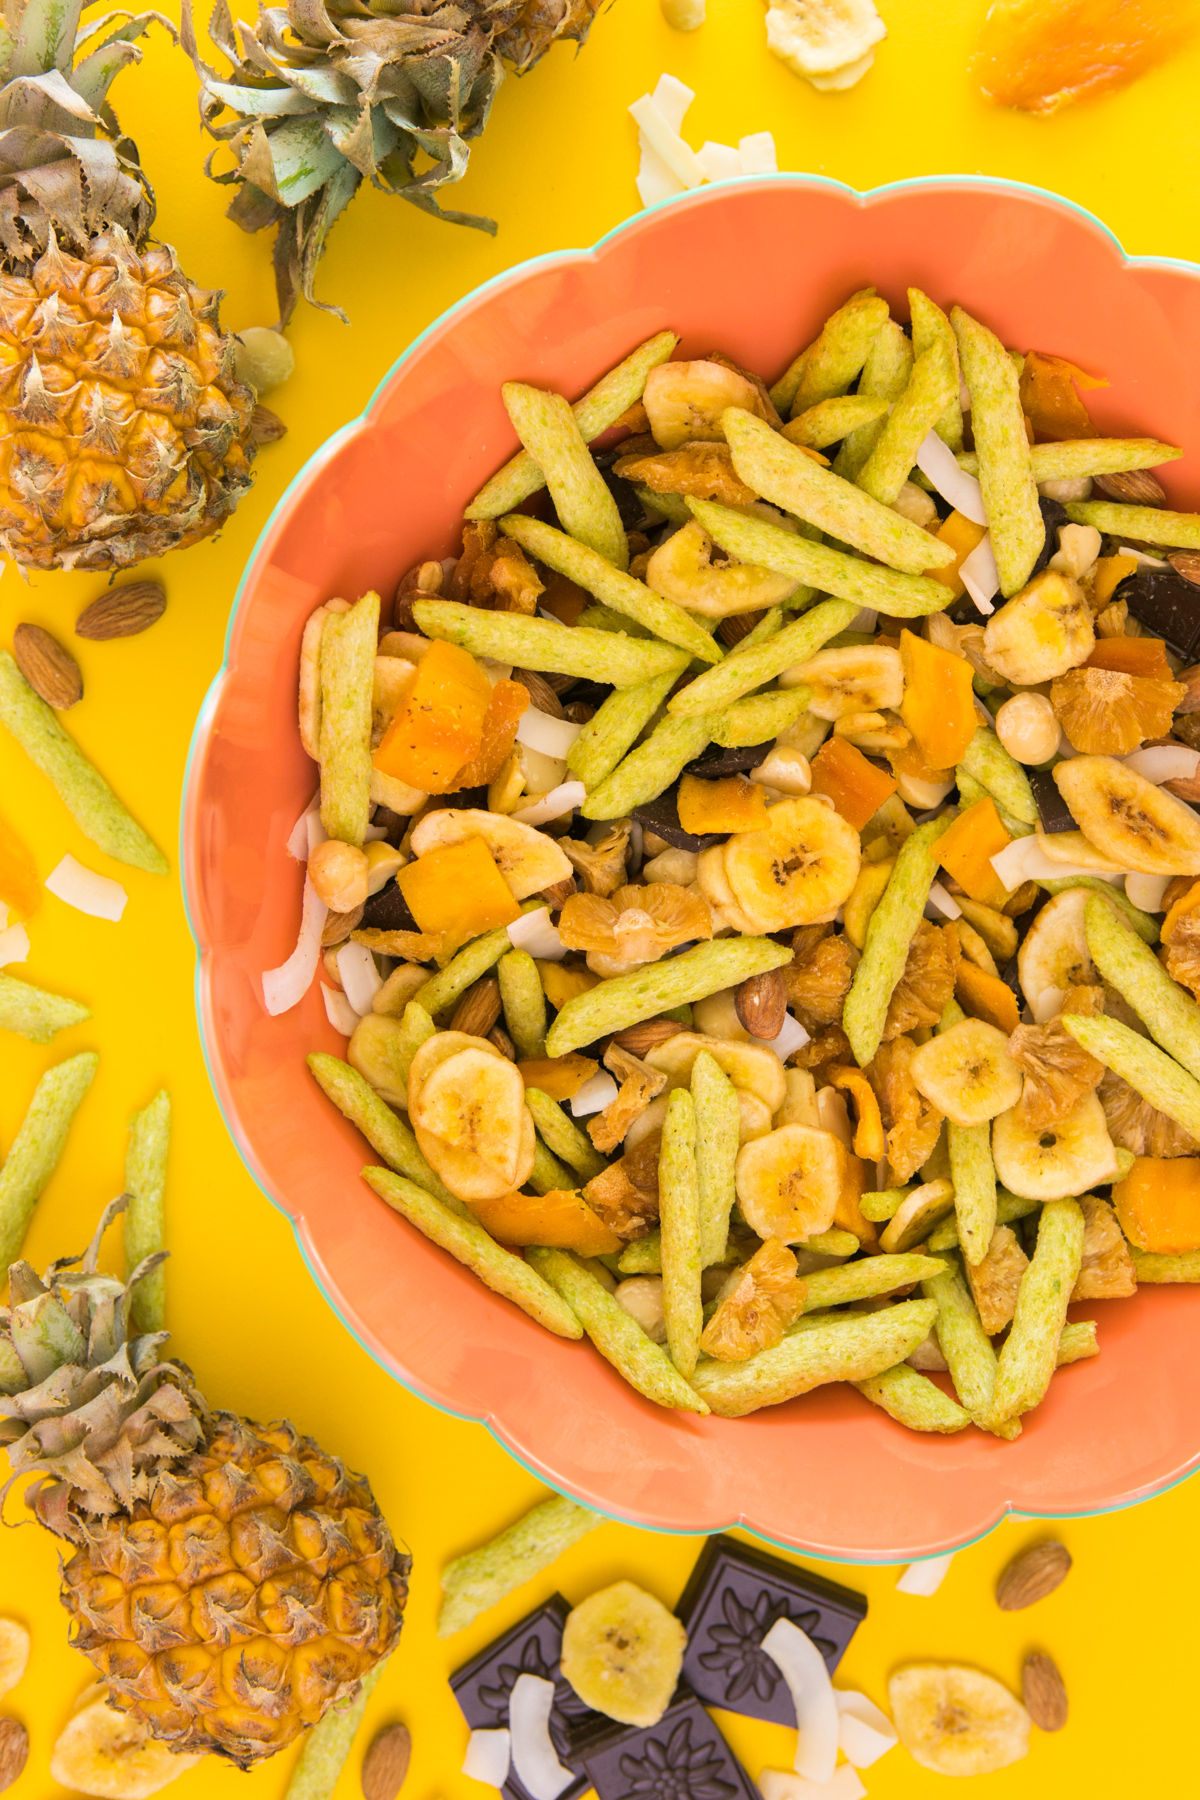 Salty, sweet and a taste of the tropics! You're going to love this homemade tropical trail mix.